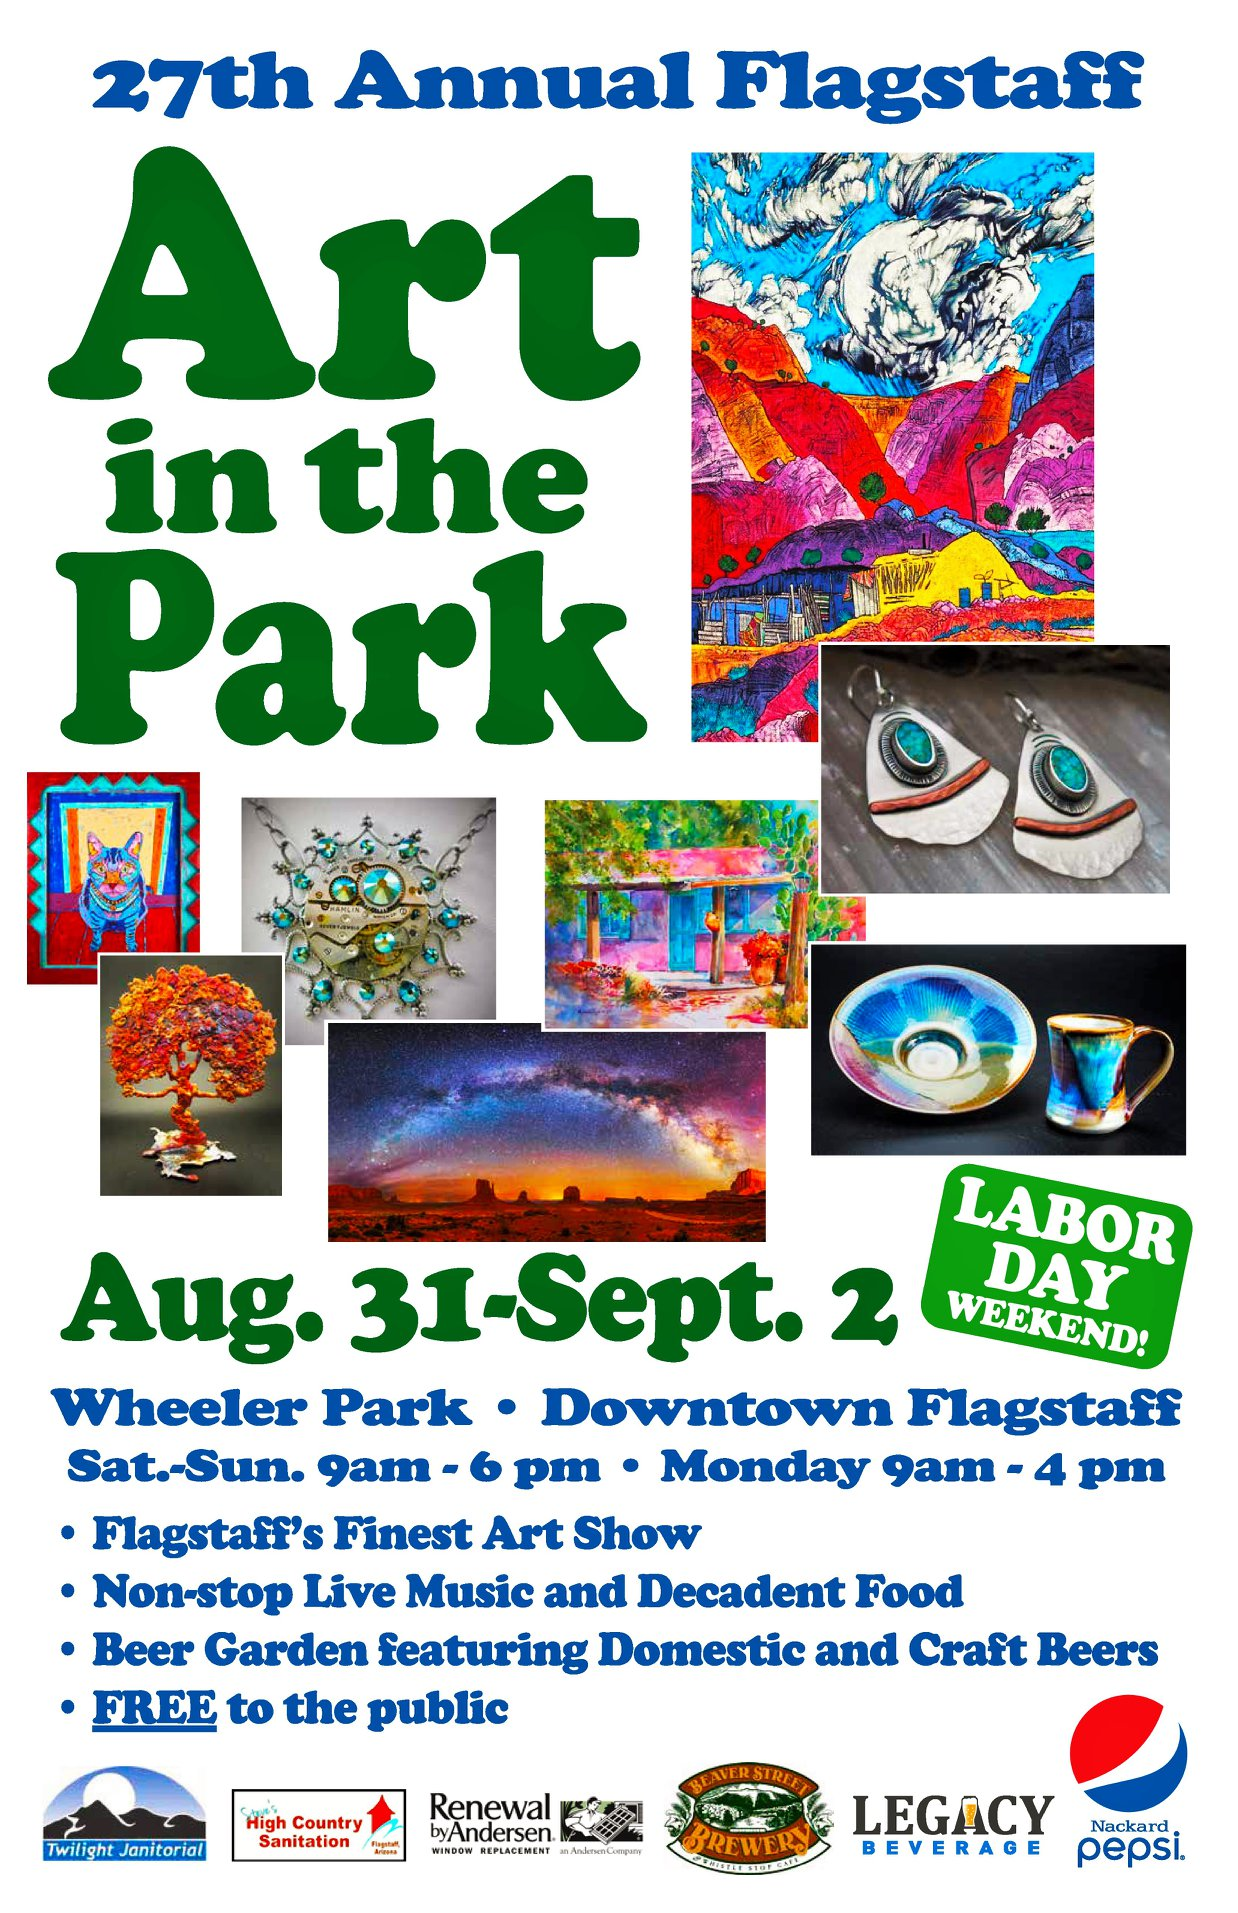 art_in_the_park_27th.jpg